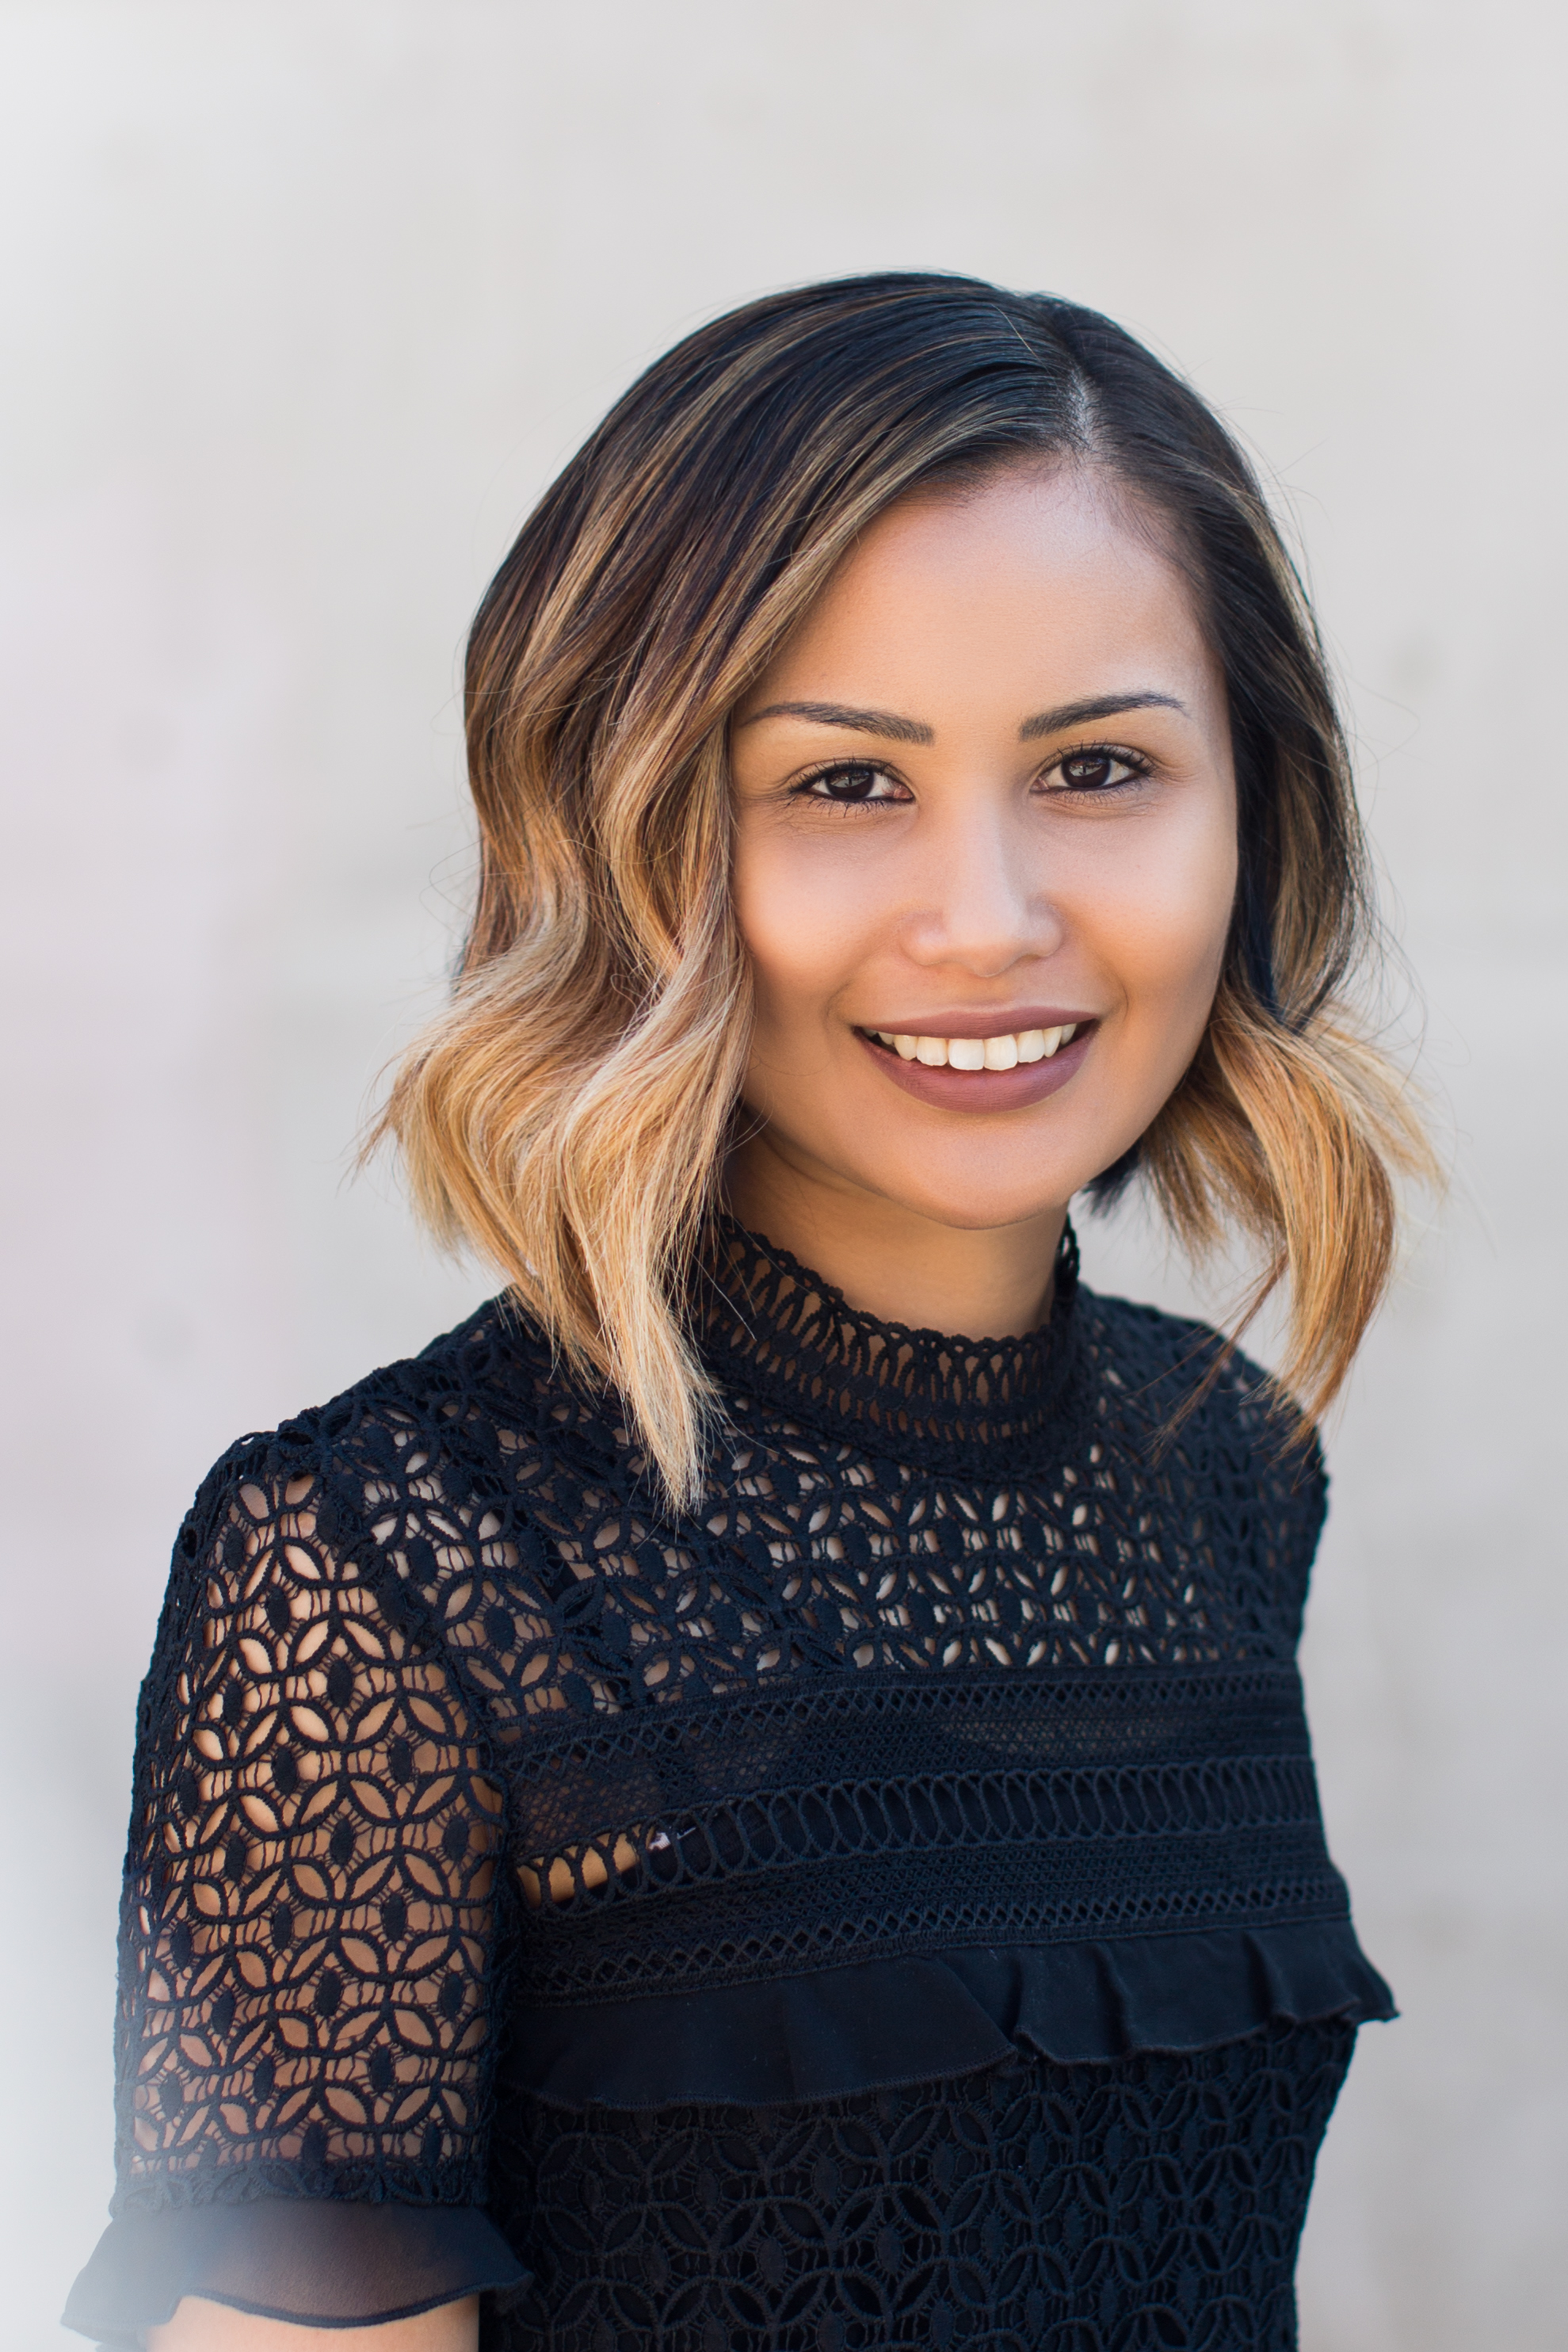 Rhiean Kearns - Say hello to Rhiean ave salons part time front desk manager. hopefully you will get a chance to meet this sassy babe. she is a beauty to be around and is here to help you with all of you scheduling needs.